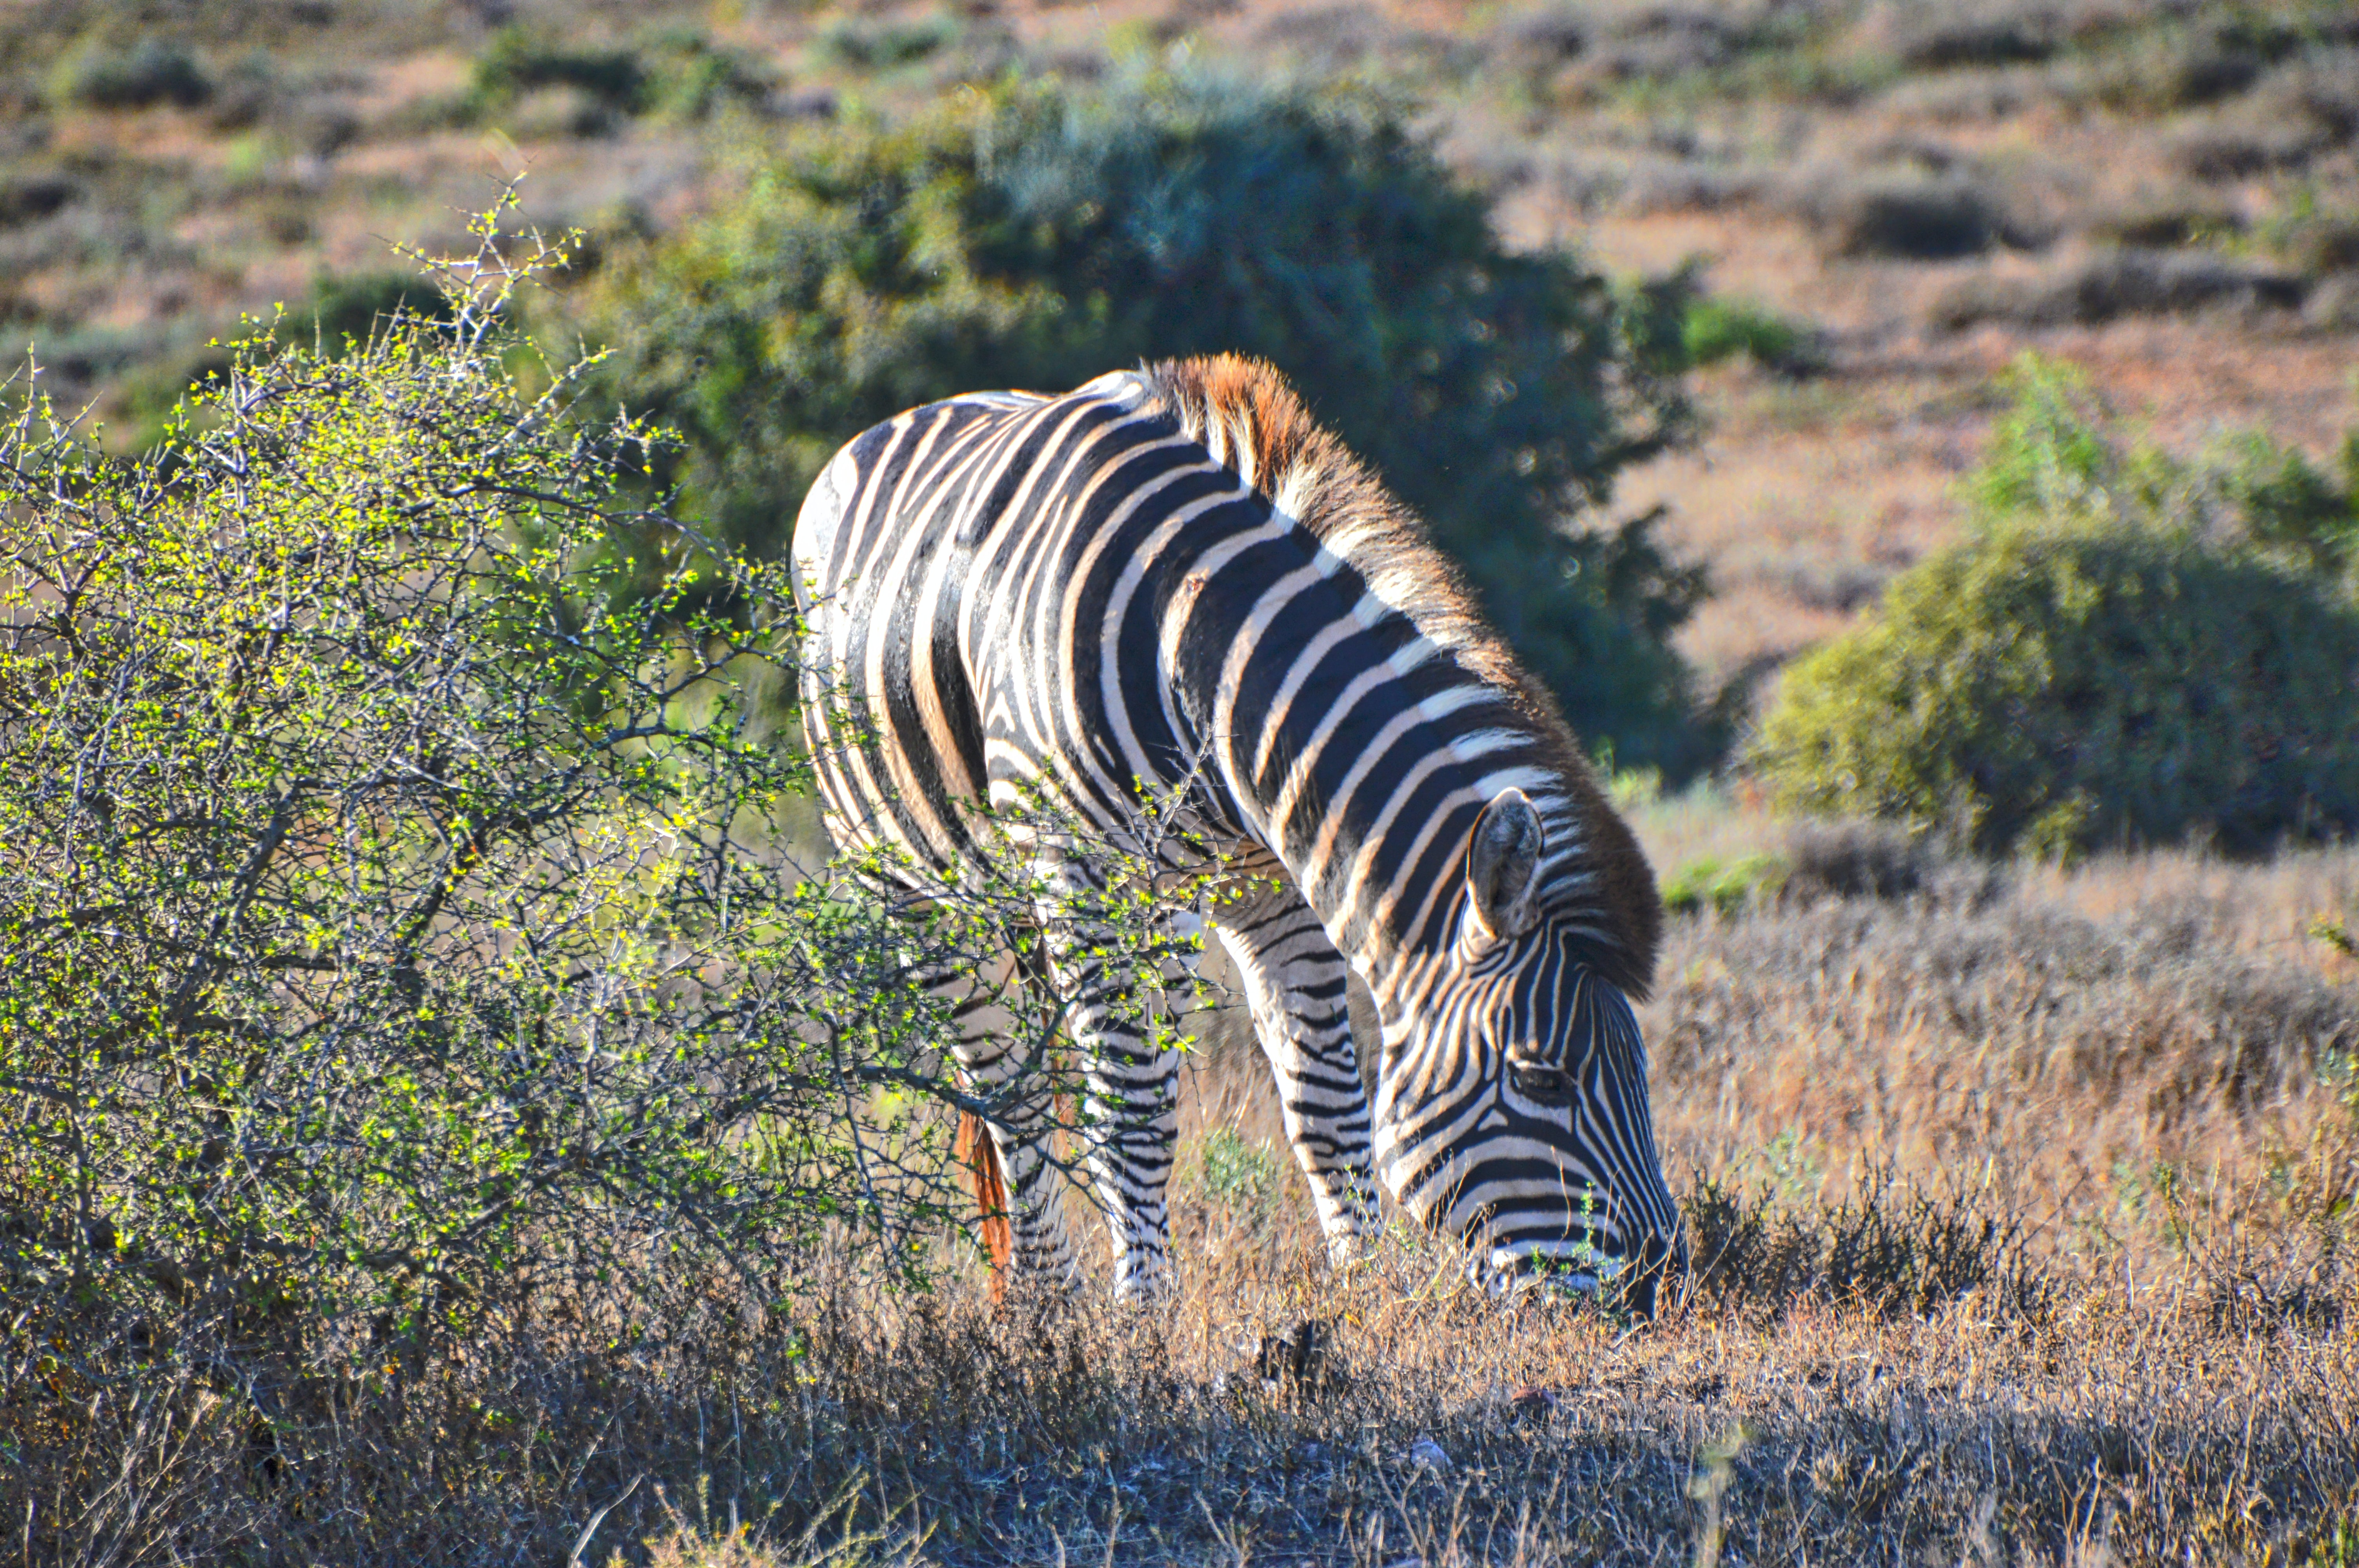 zebra eating grass during daytime